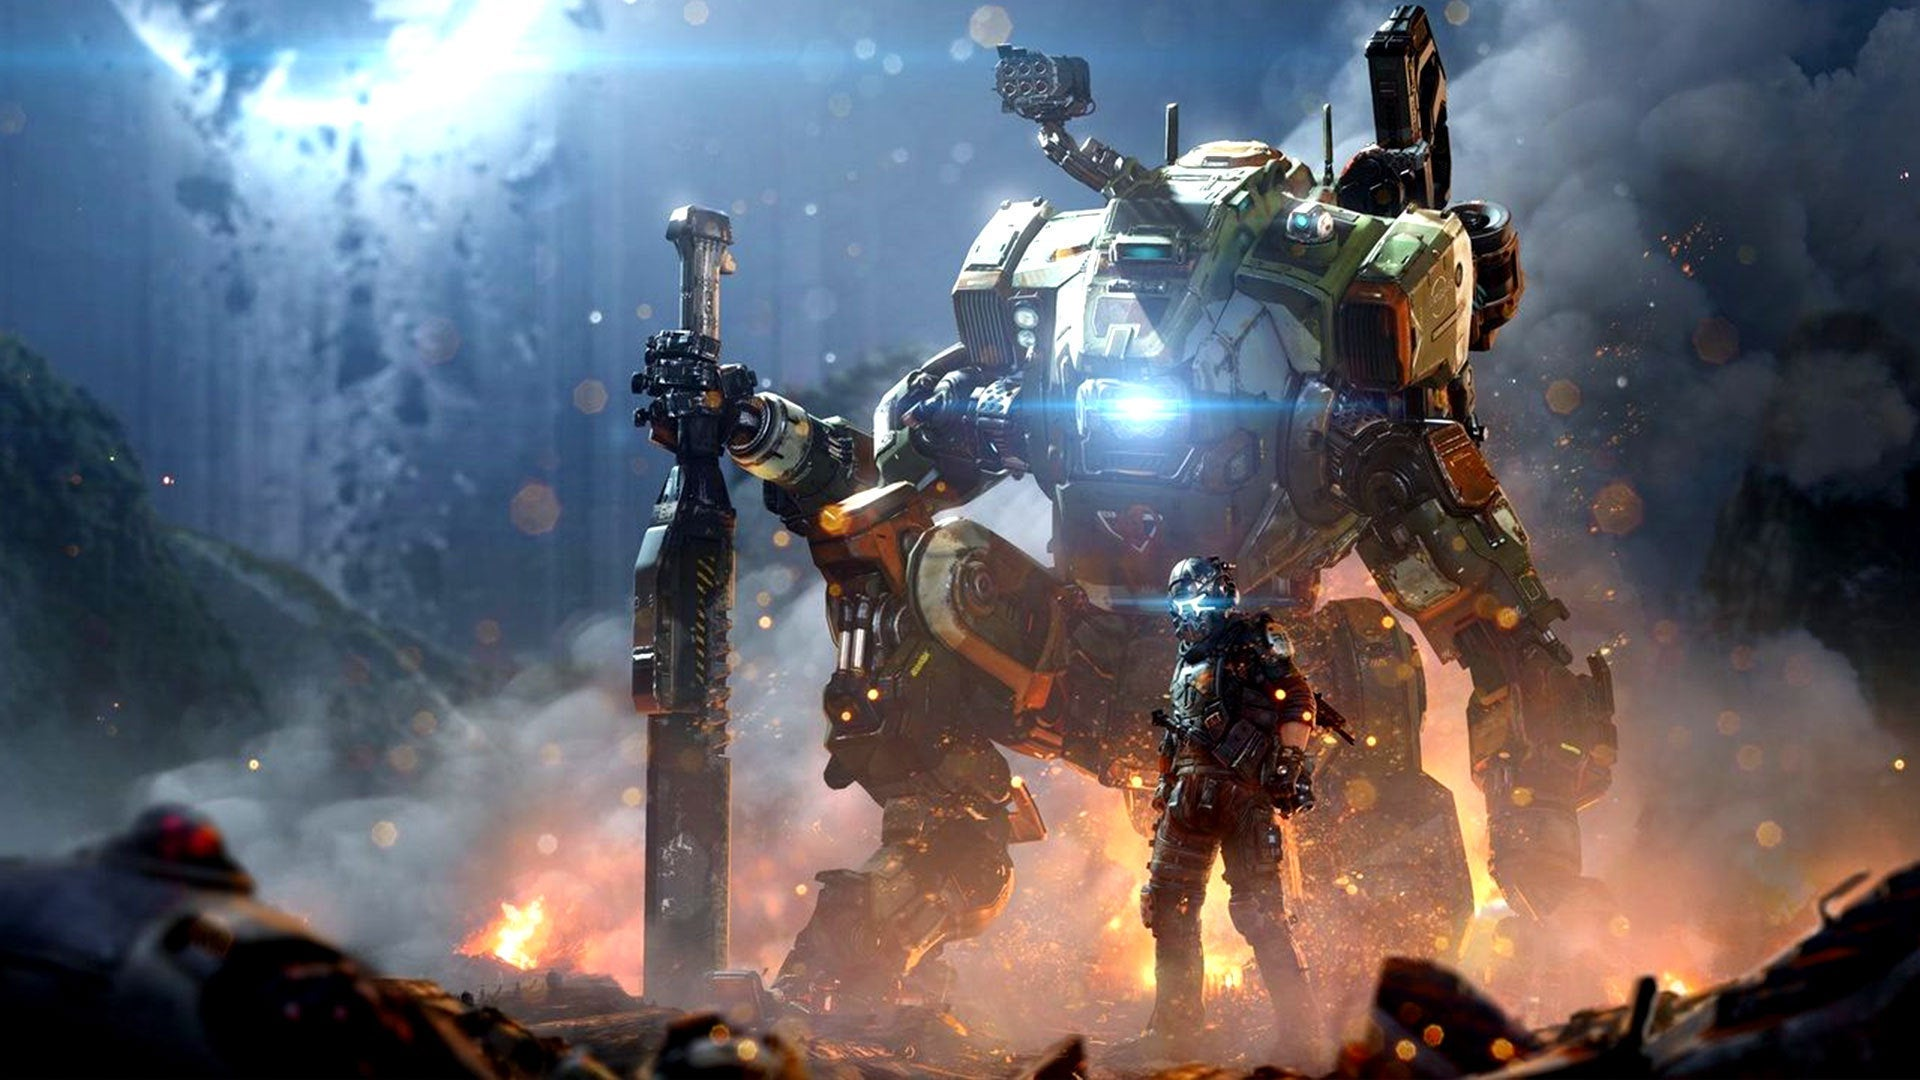 titanfall 2 1621908492448.jpeg?width=640&fit=bounds&height=480&quality=20&dpr=0